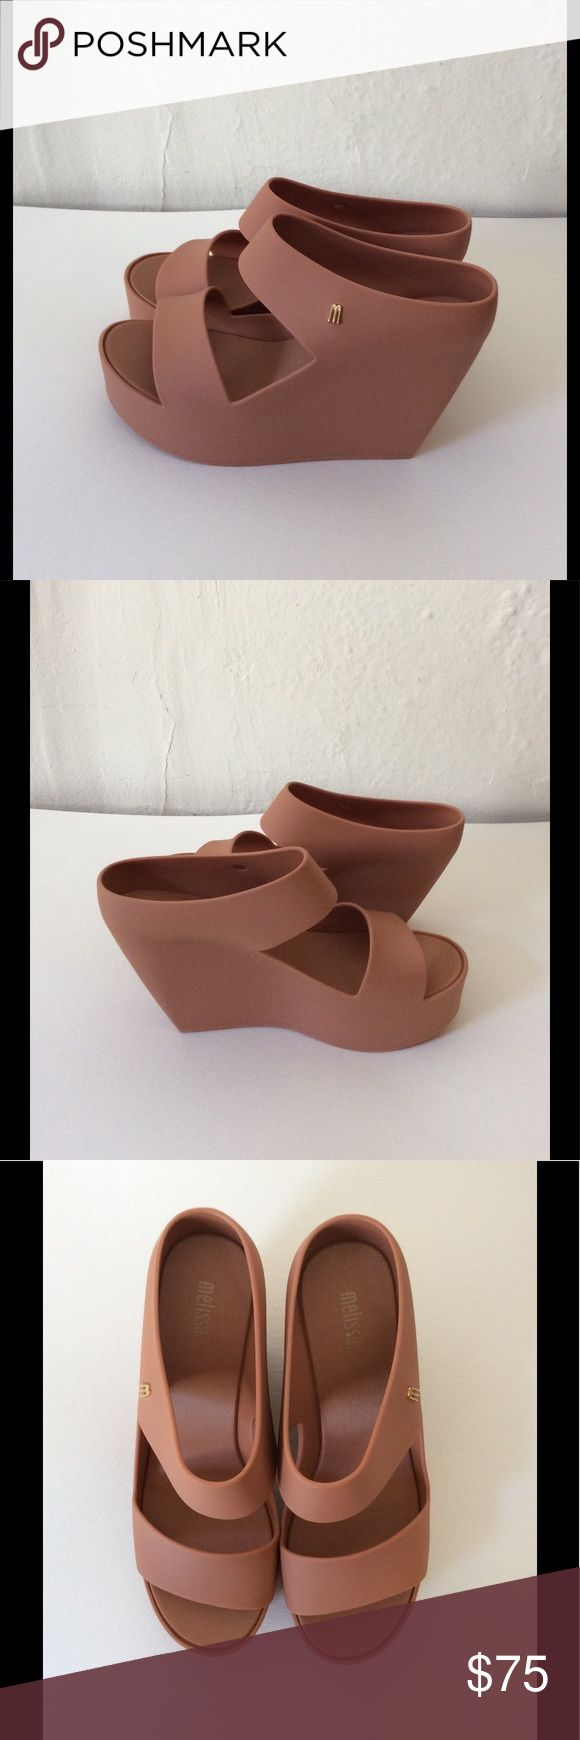 "Mellisa Shoes Creative Women's Wedge Shoes Nude Brand new with Box. Never worn. Size: 6 B(M). Color: Nude. Heel height: 3 1/2"". Platform height: 1 1/4"". Material: Synthetic. The Shoes runs big. If you are size 7, this size should work for you. mellisa shoes Shoes Wedges"